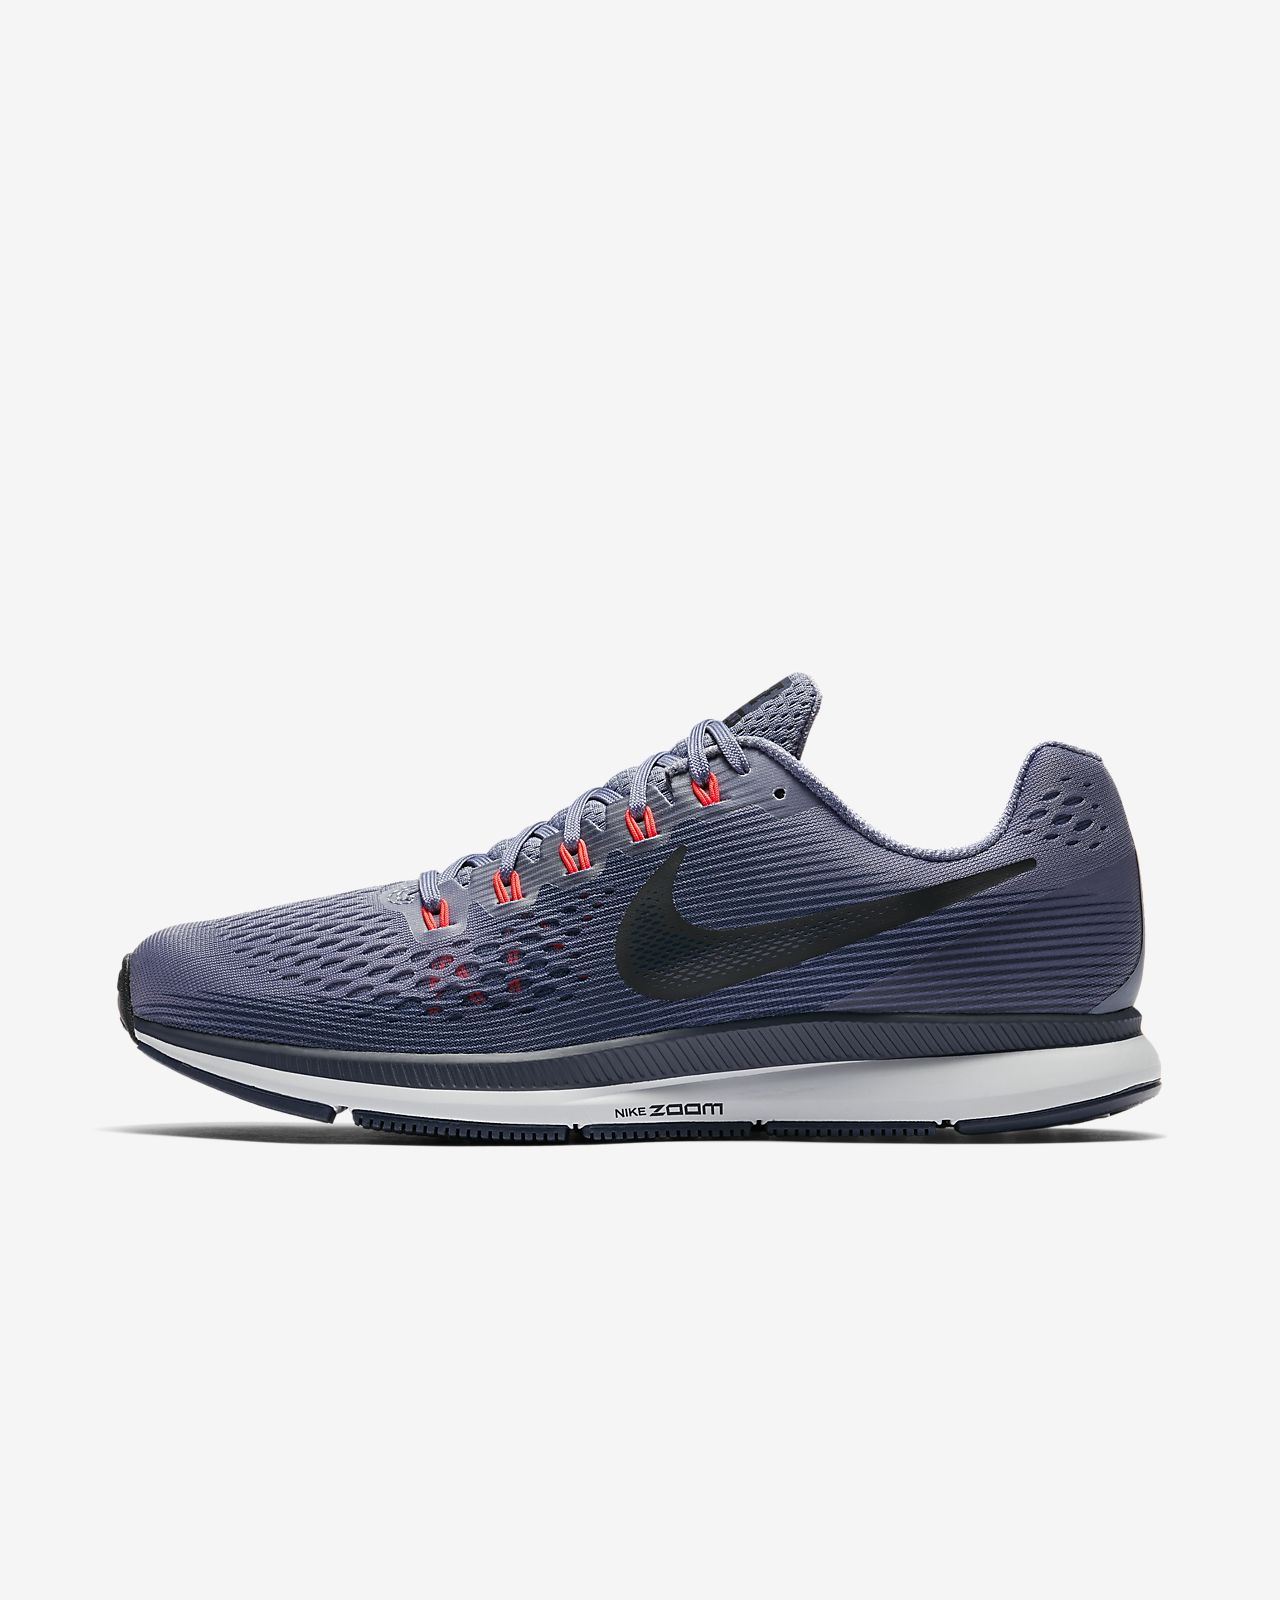 nike shoes 120 grams to cups 936731